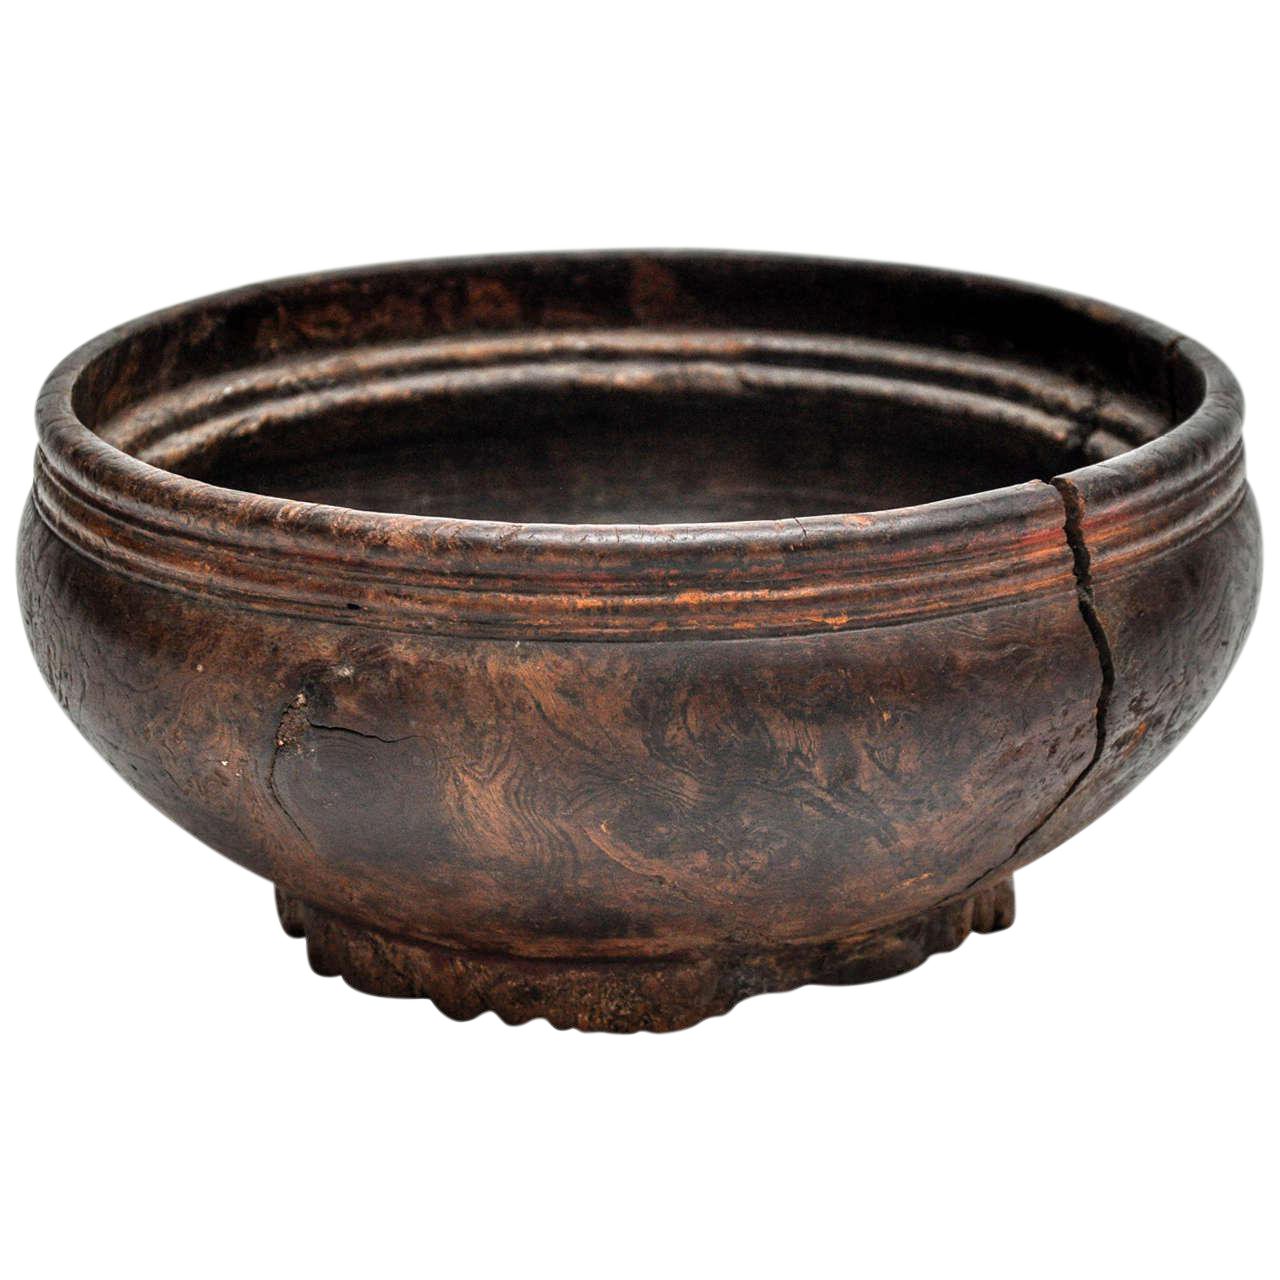 Early 19th Century Wooden Bowl With Engraving From Naga